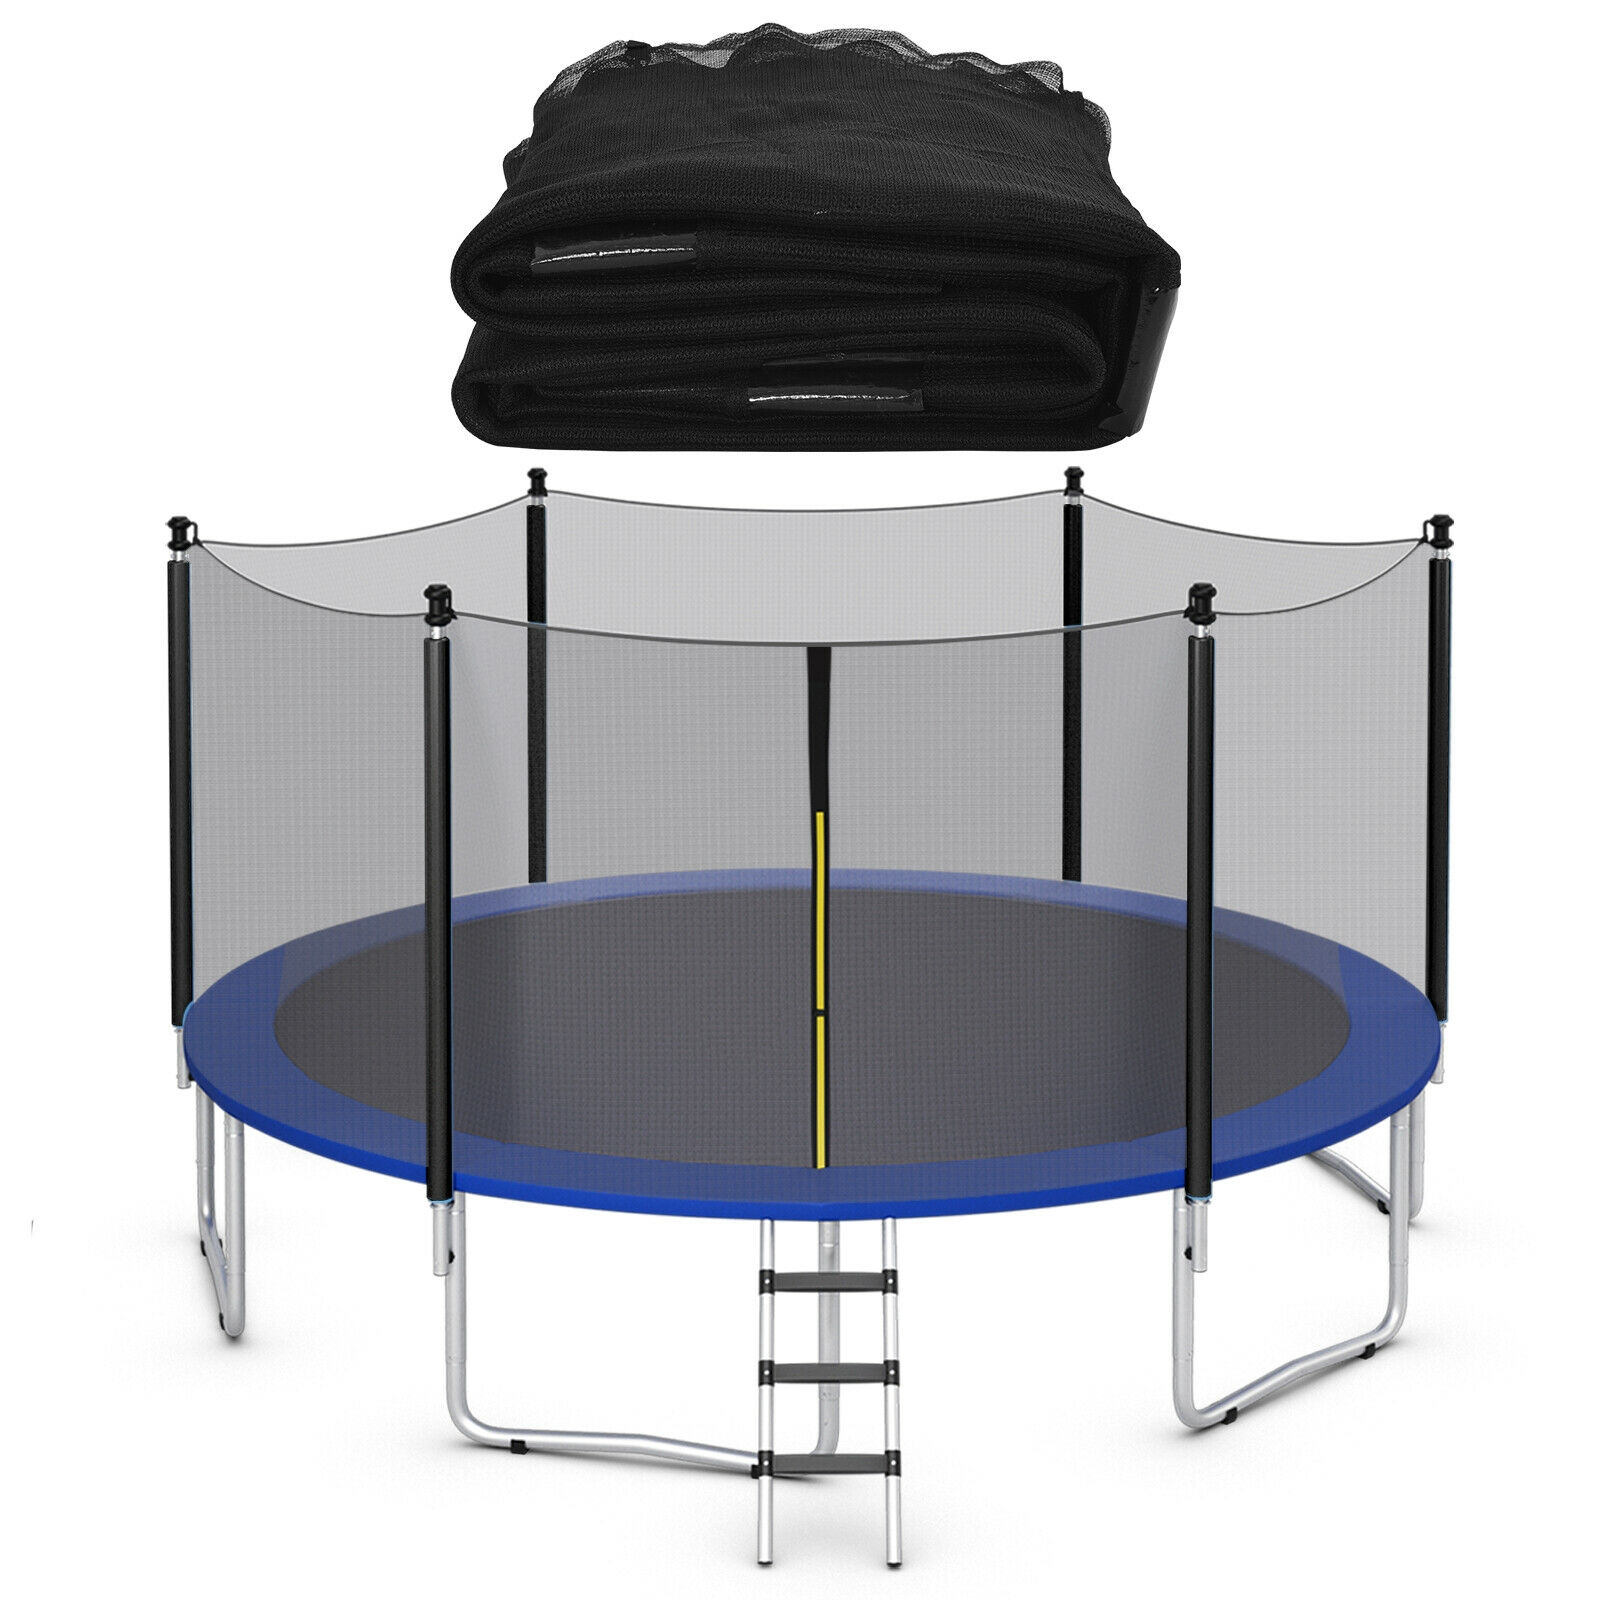 Replacement Trampoline Safety Enclosure Net